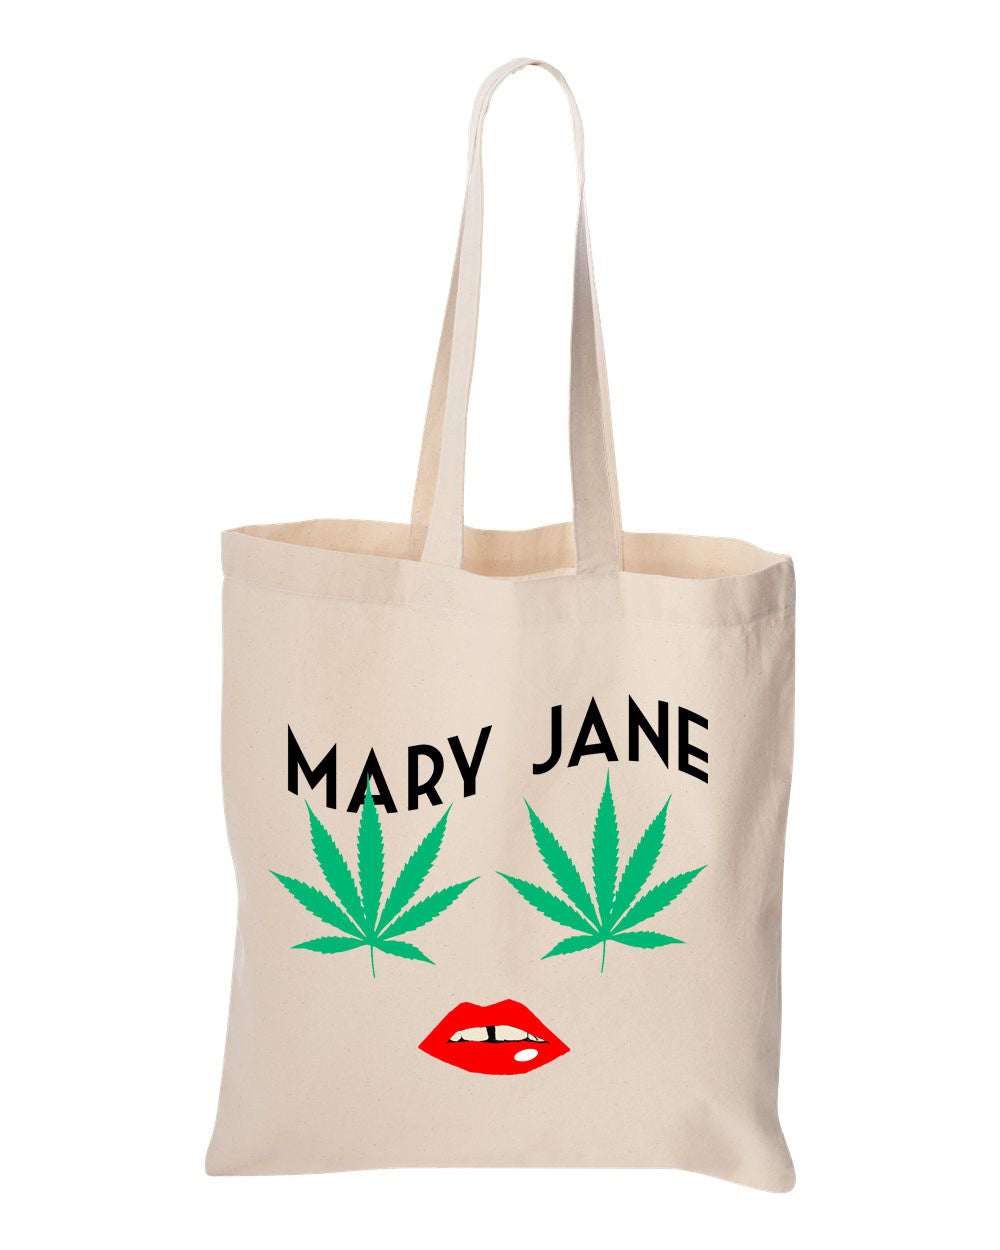 MARY JANE TOTE BAG - POP CAVEN